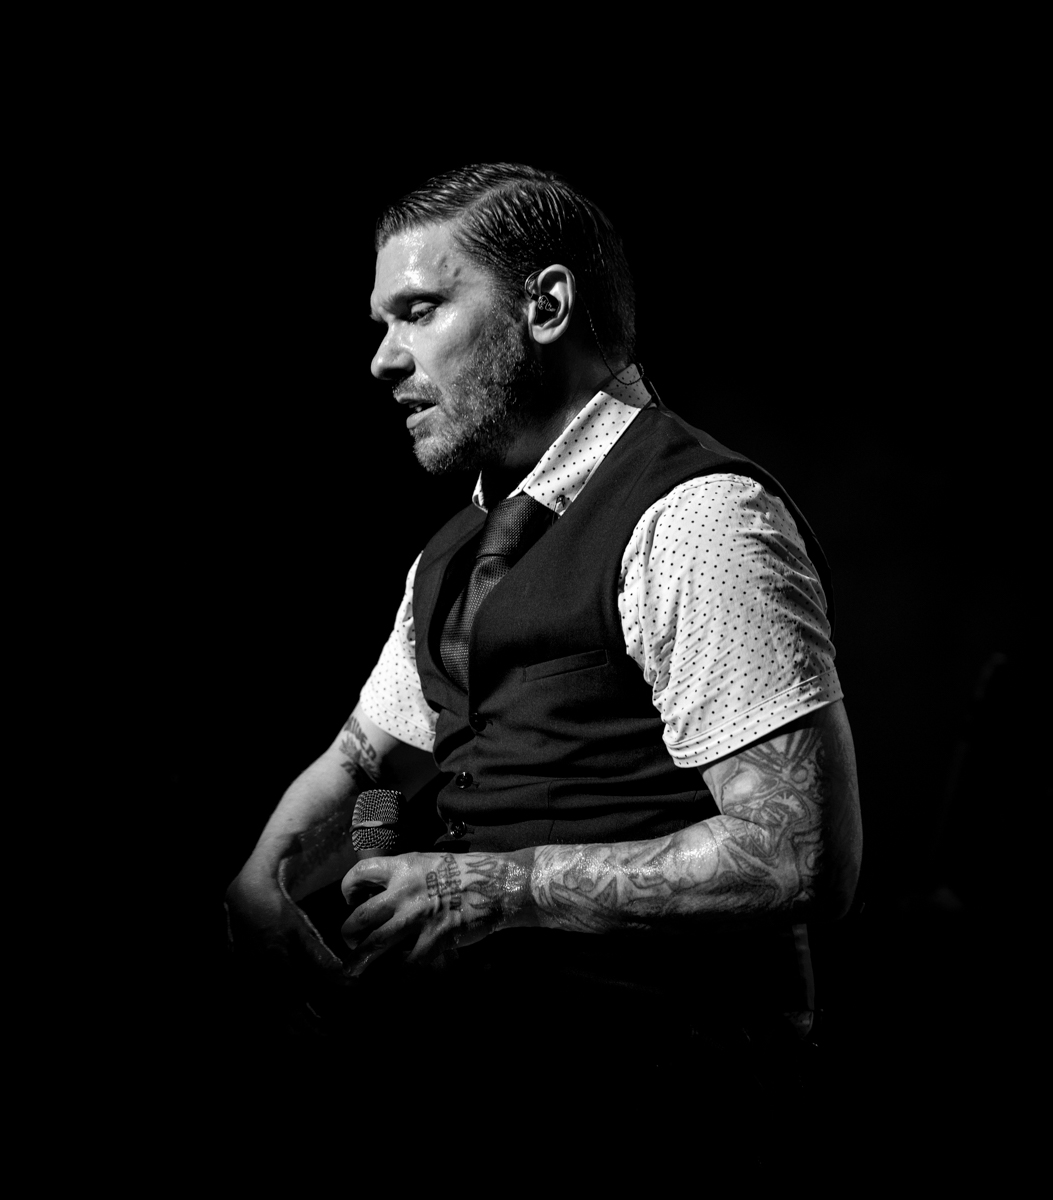 Brent Smith of Shinedown performs at Hollywood Casino Amphitheatre in Tinley Park, IL on 07/14/2019.